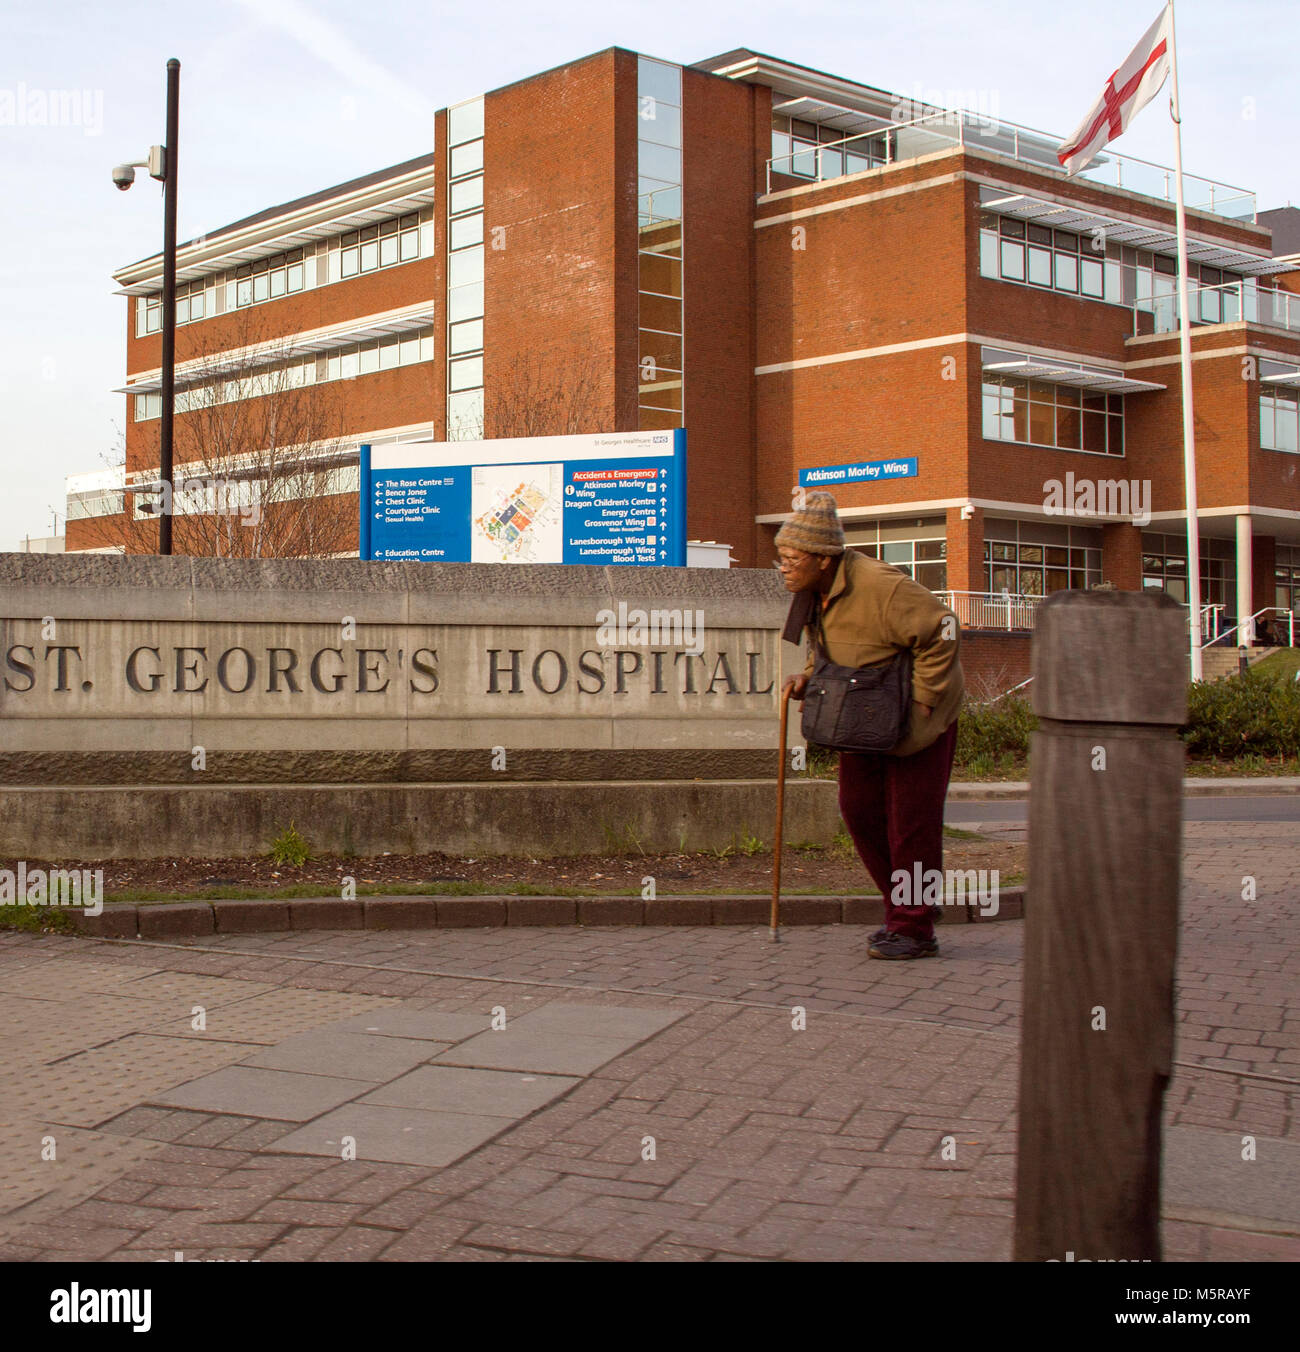 Accident In Surrey Today >> St. George's Hospital, Tooting Stock Photos & St. George's ...